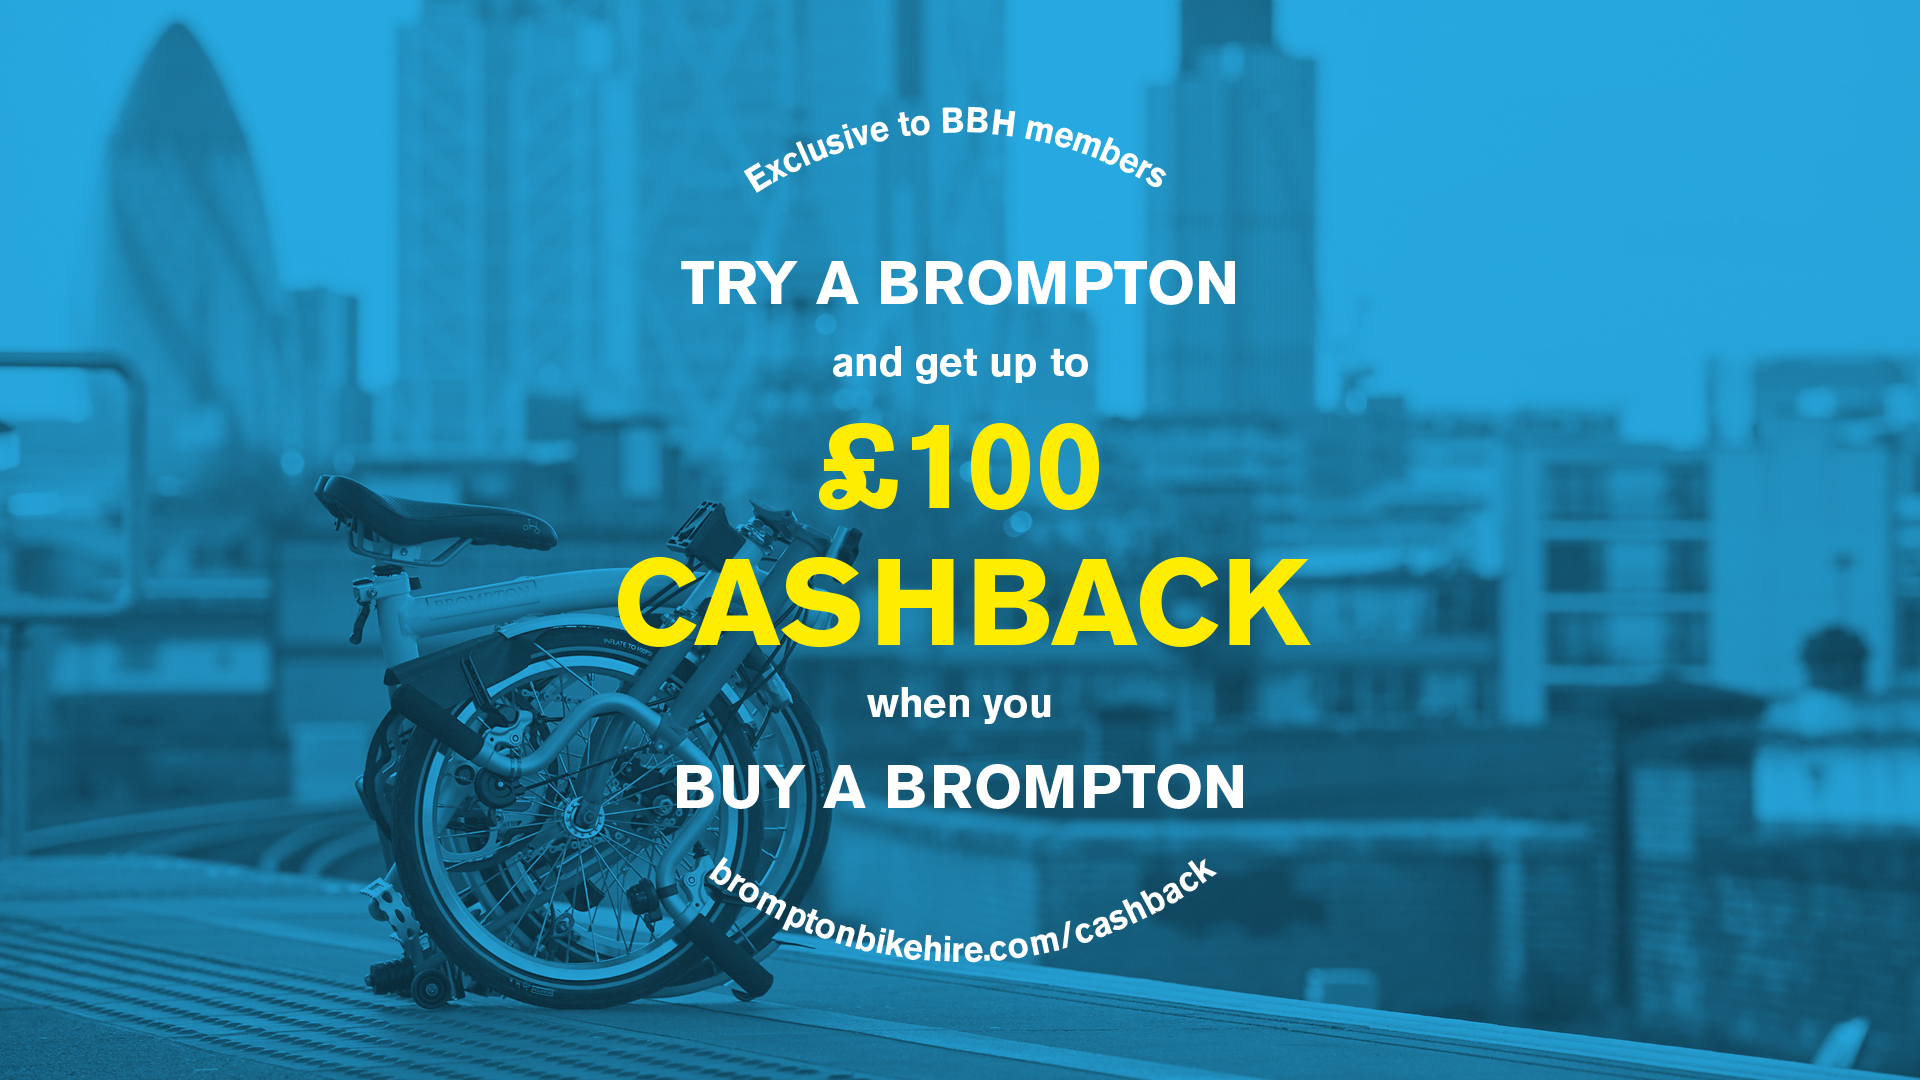 Brompton Bike Hire Cashback